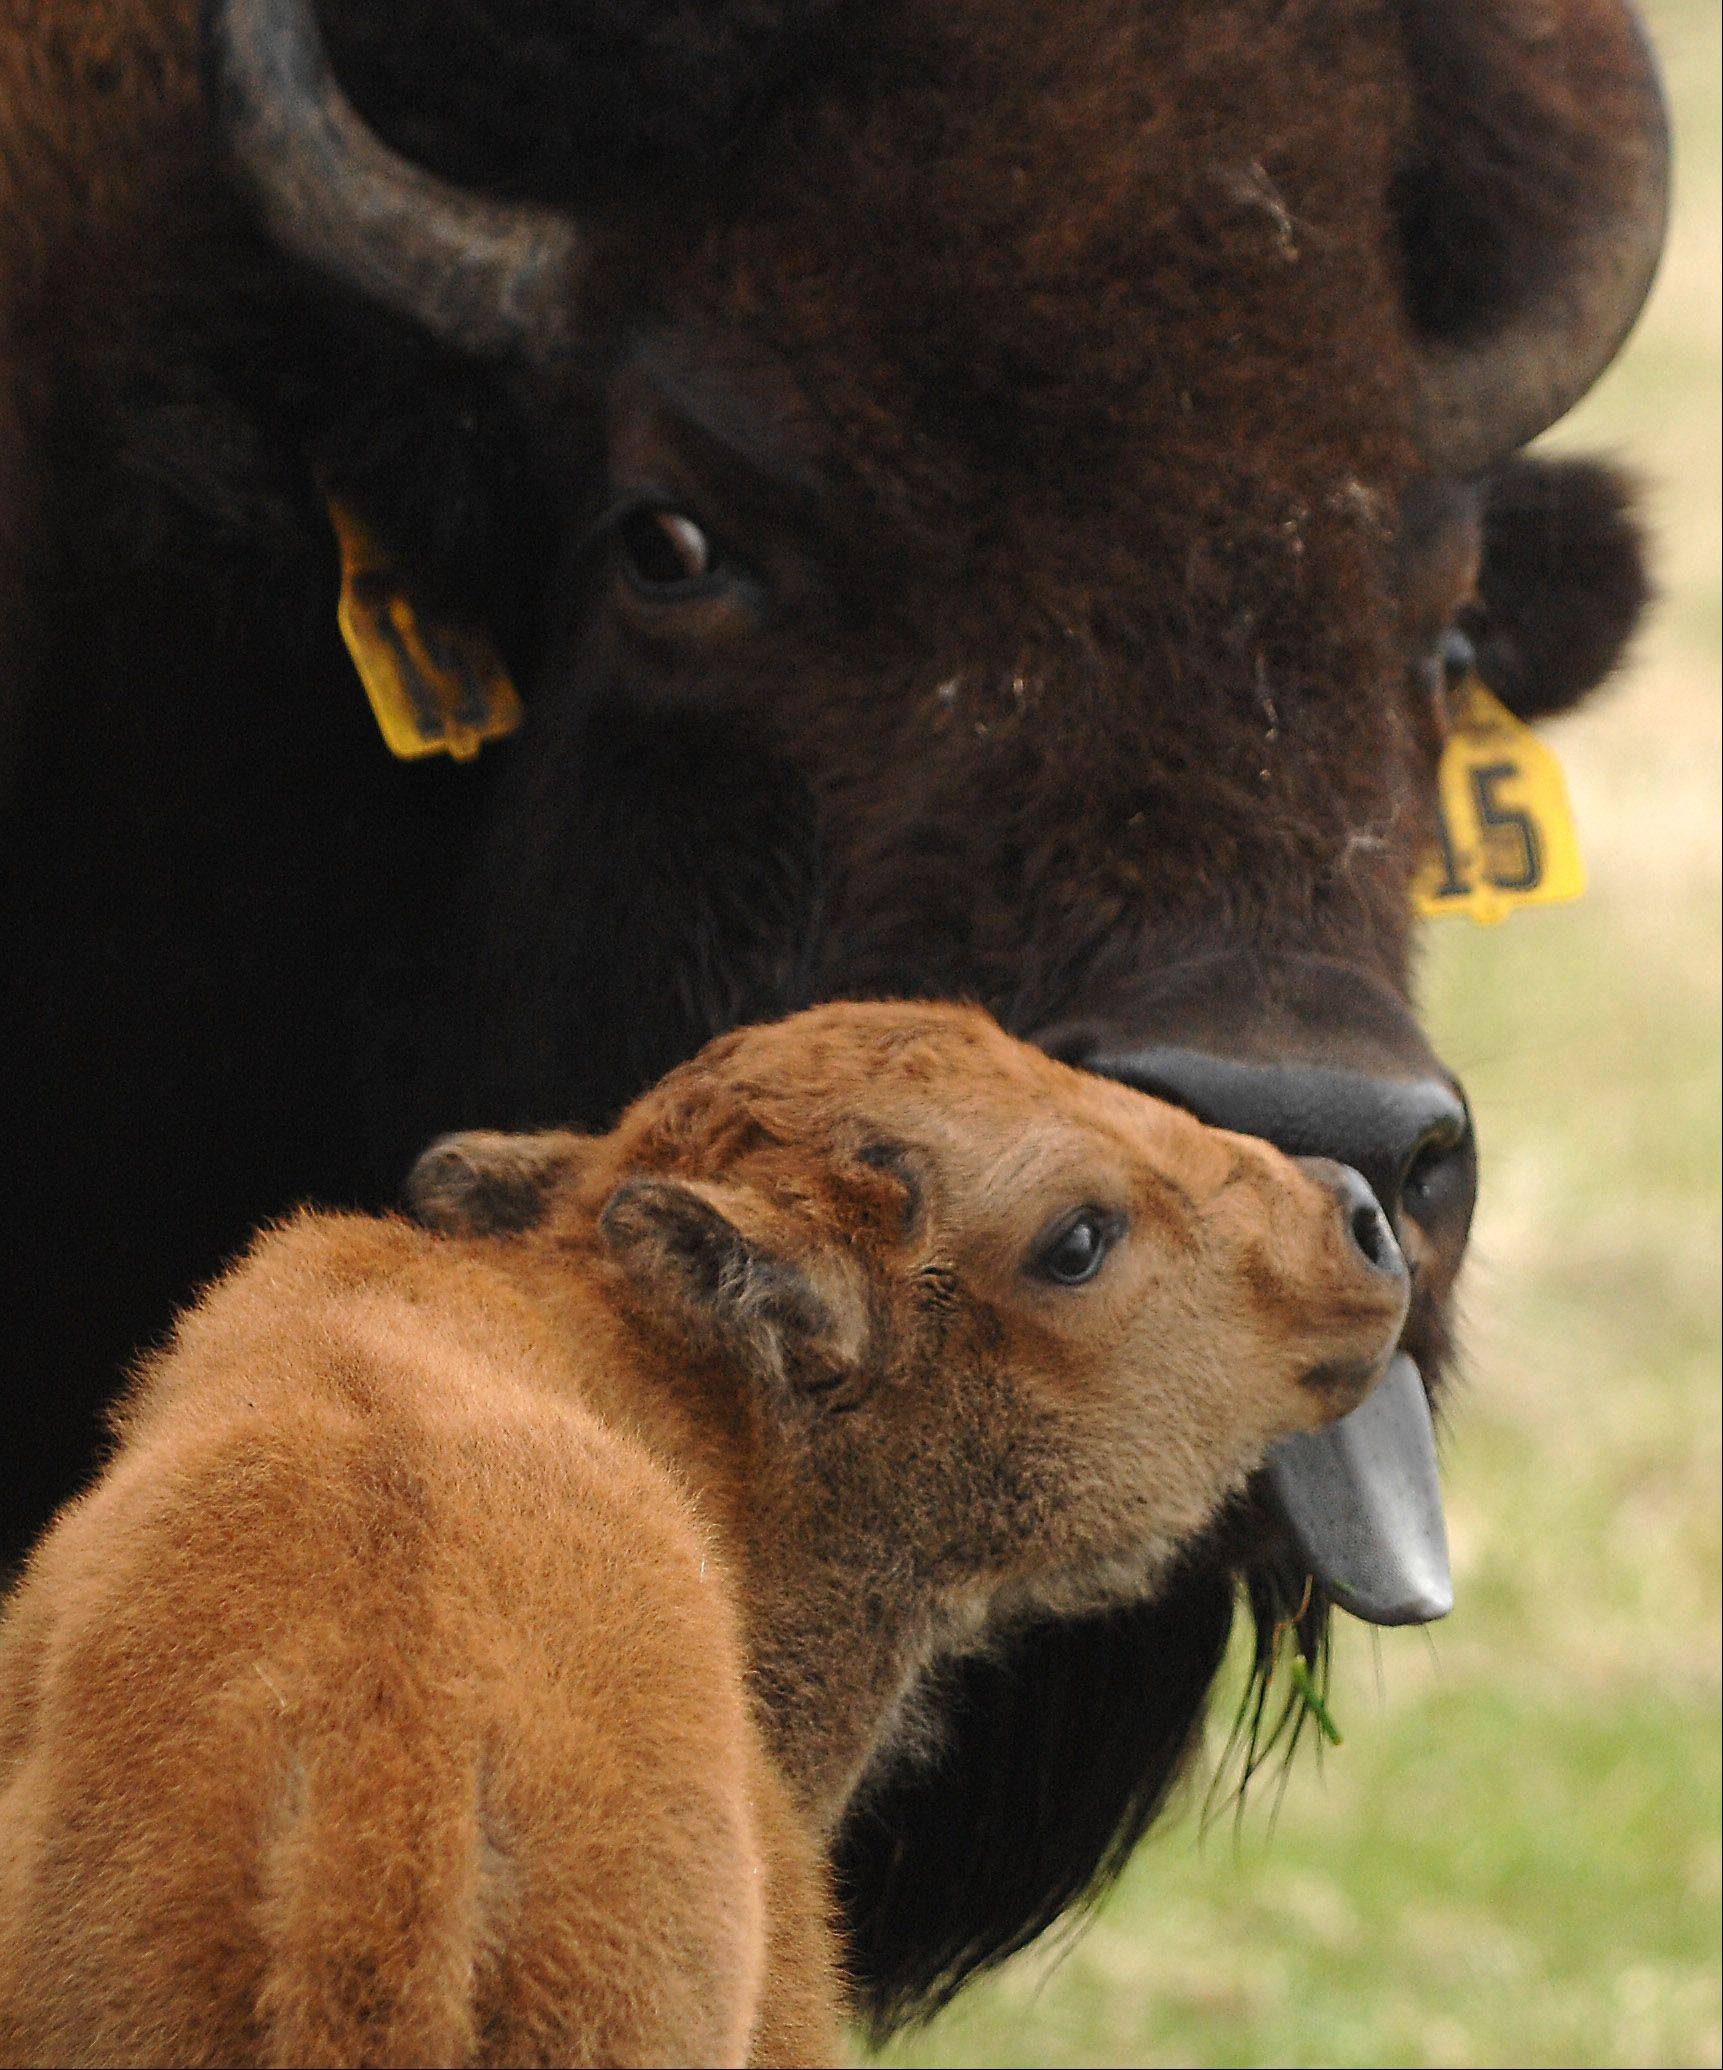 A newborn bison calf gets a bath from its mother at Fermilab in Batavia Tuesday. The calves were born Sunday and Monday.